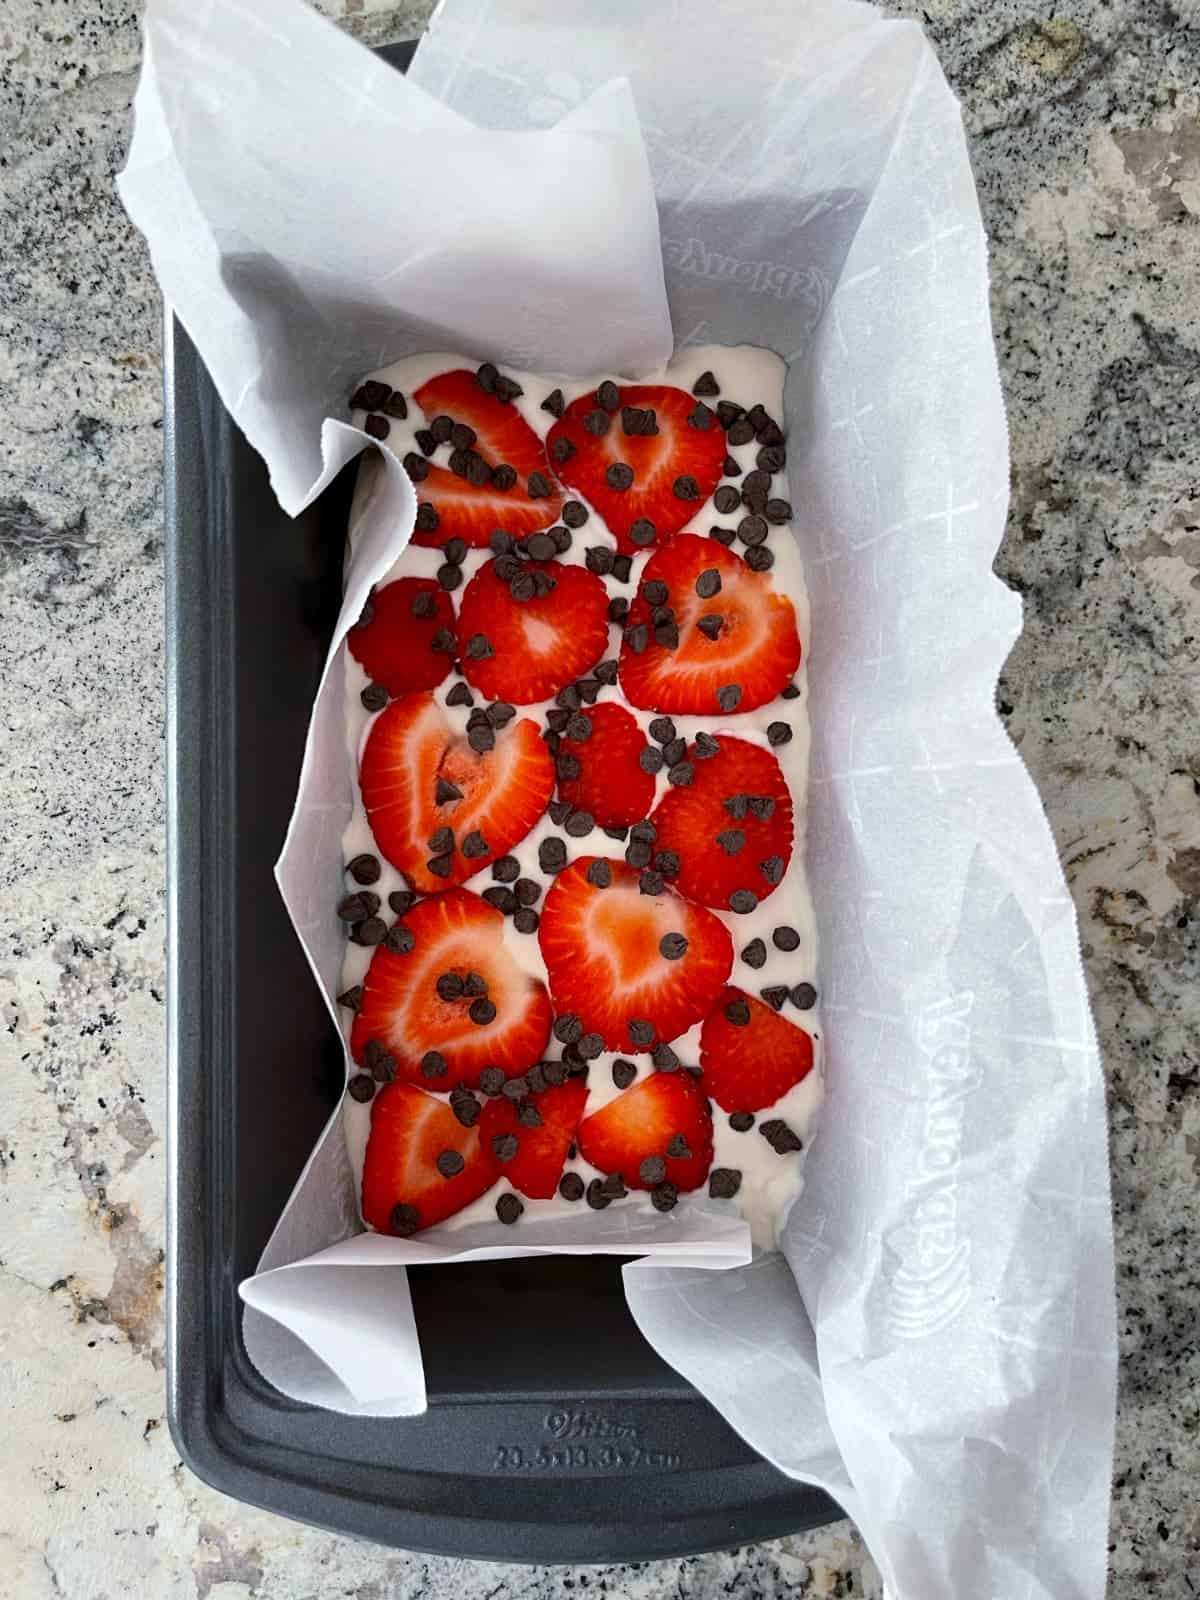 Strawberry chocolate chip yogurt bark in parchment-lined loaf pan on granite counter.